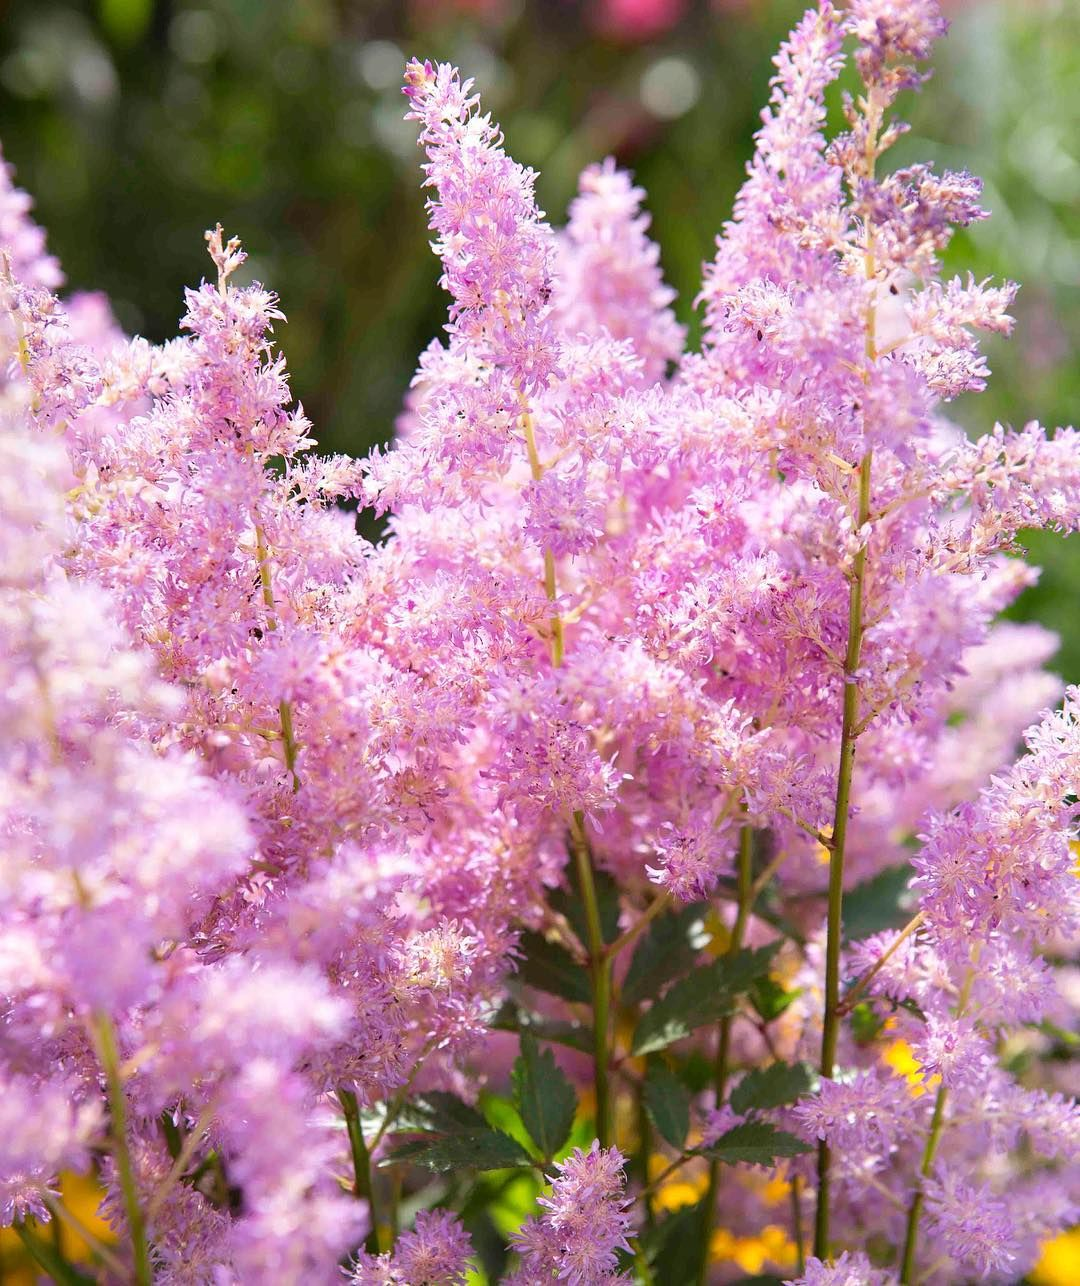 Astilbe Or Candyfloss With Images Planting Flowers Beautiful Flowers Garden